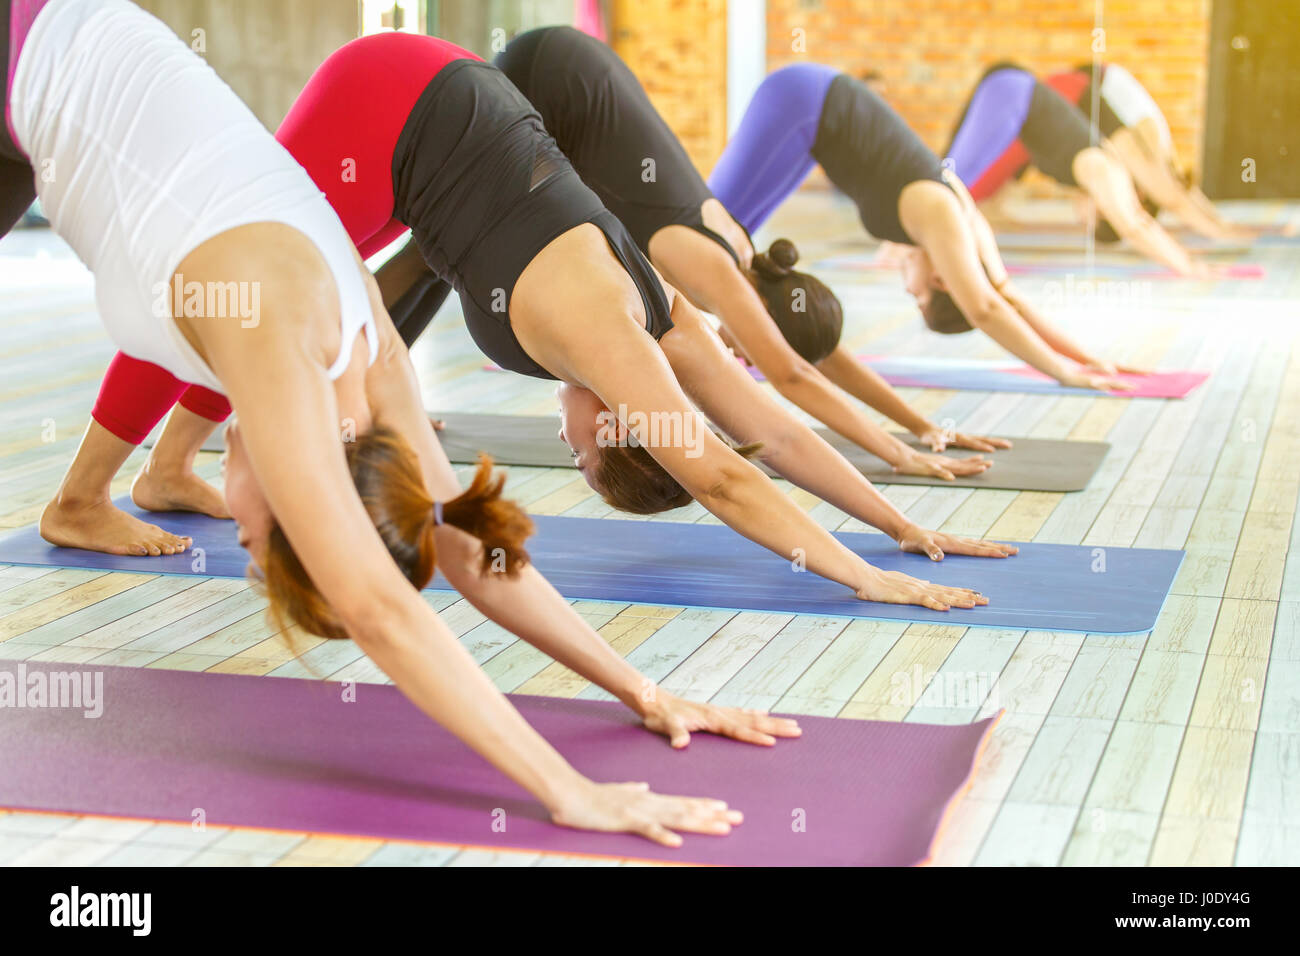 Group of young woman practicing during their yoga class in a gym - Stock Image